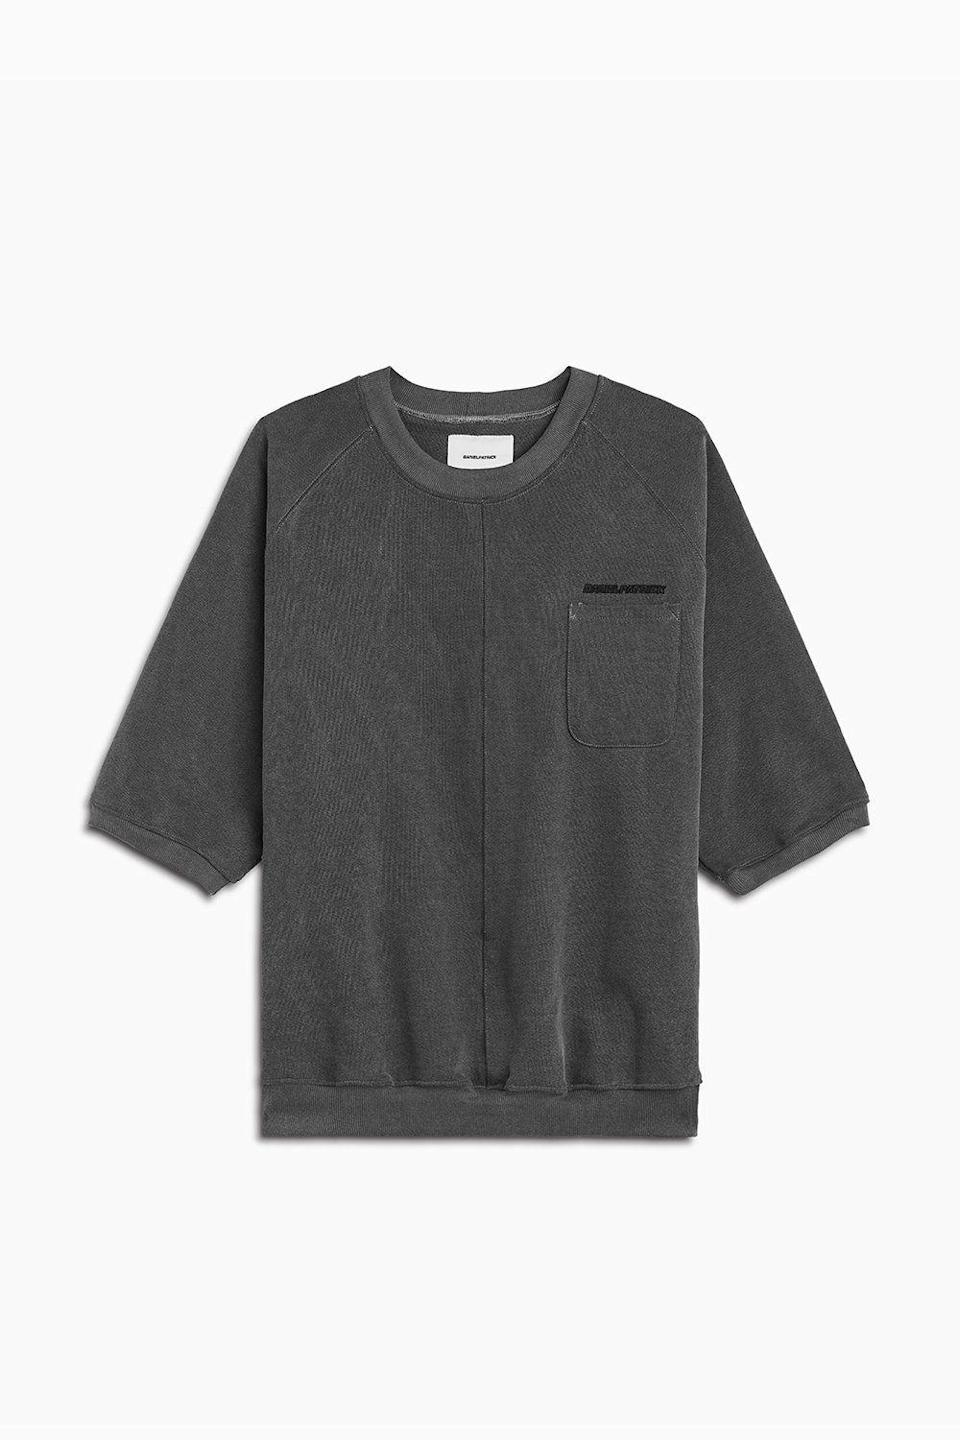 "<p><strong>Daniel Patrick</strong></p><p>danielpatrick.us</p><p><strong>$200.00</strong></p><p><a href=""https://www.danielpatrick.us/collections/mens-new-arrivals/products/s-s-raglan-pocket-crew-vintage-black"" rel=""nofollow noopener"" target=""_blank"" data-ylk=""slk:Shop Now"" class=""link rapid-noclick-resp"">Shop Now</a></p><p>Regardless of season, coziness is always in style. This raglan crew has a refined, modern look, yet you're still just wearing a sweatshirt, coziness intact. Its a WFH win-win.</p>"